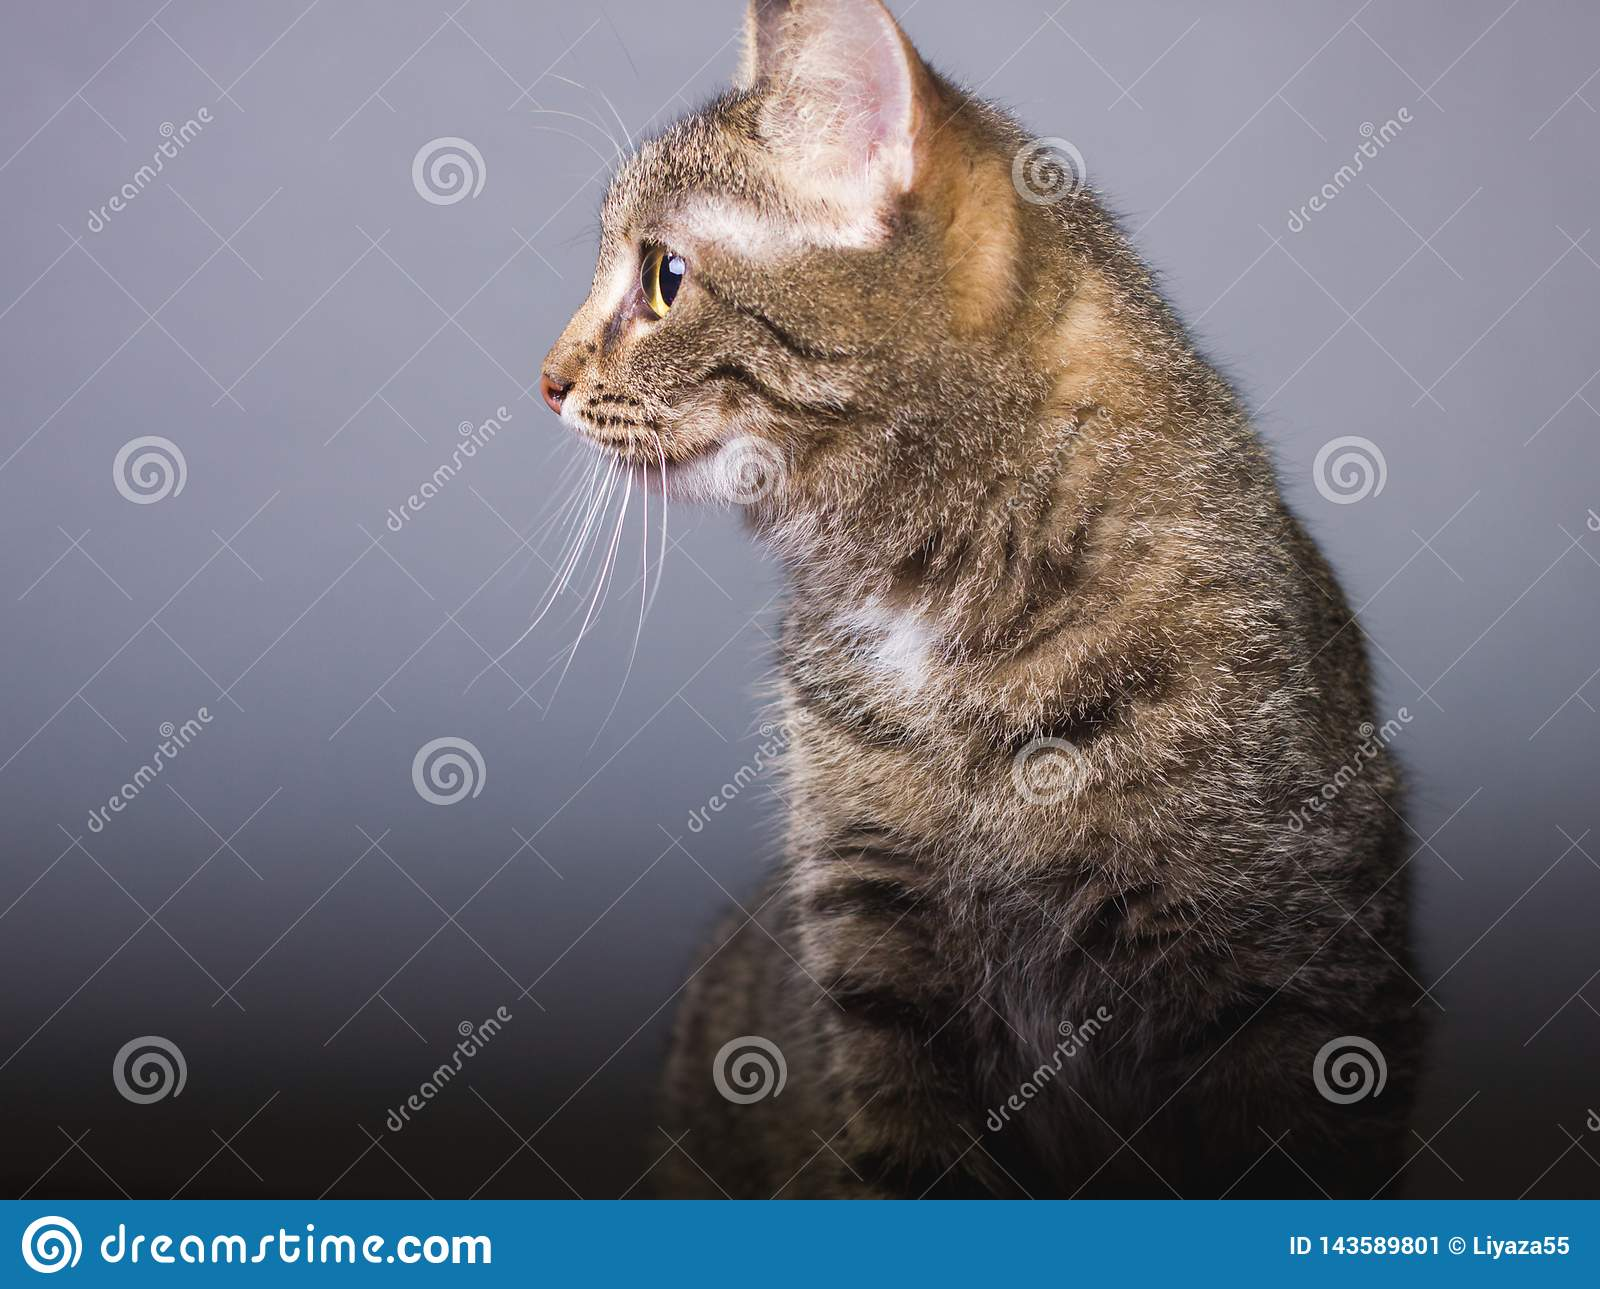 Brown cat look looking away, profile photo of pet